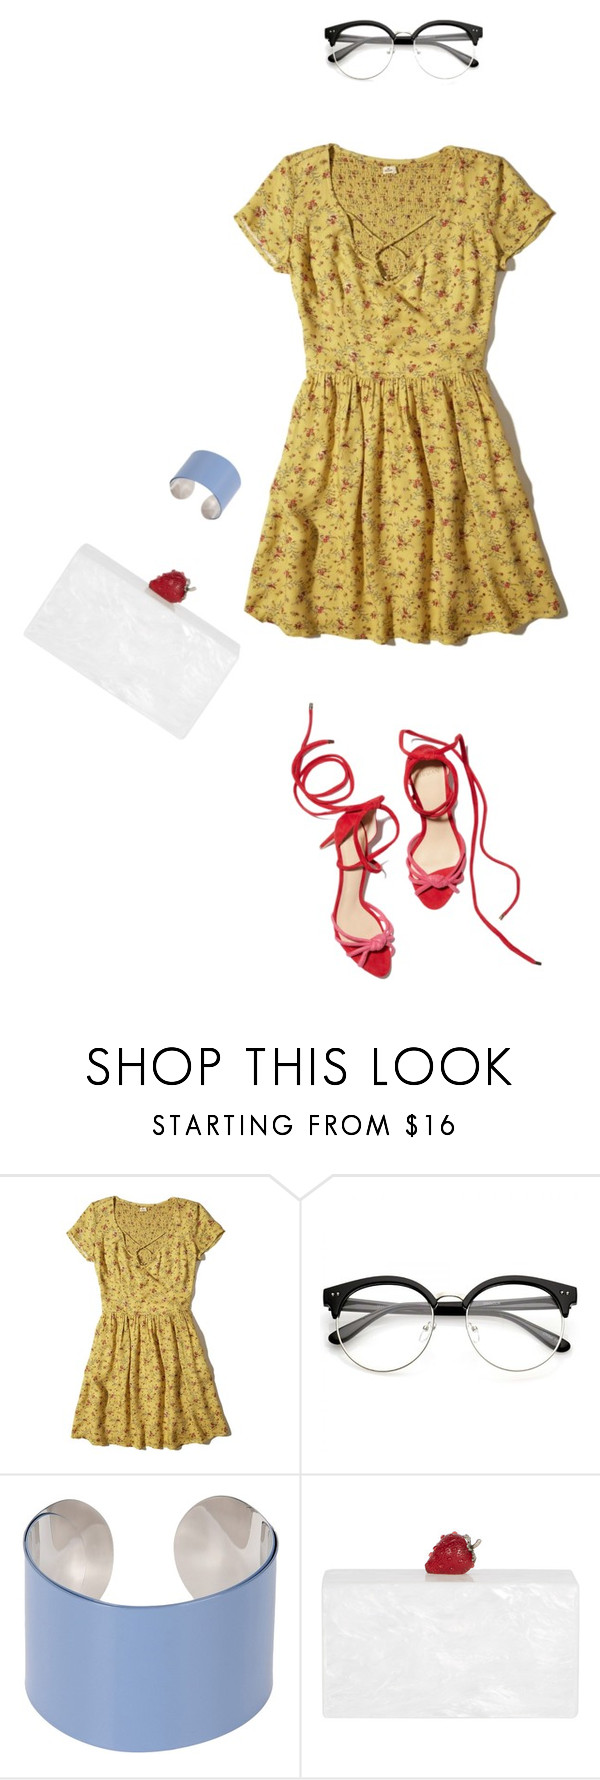 """Untitled #392"" by vividdusk ❤ liked on Polyvore featuring Hollister Co., Maison Margiela and Edie Parker"